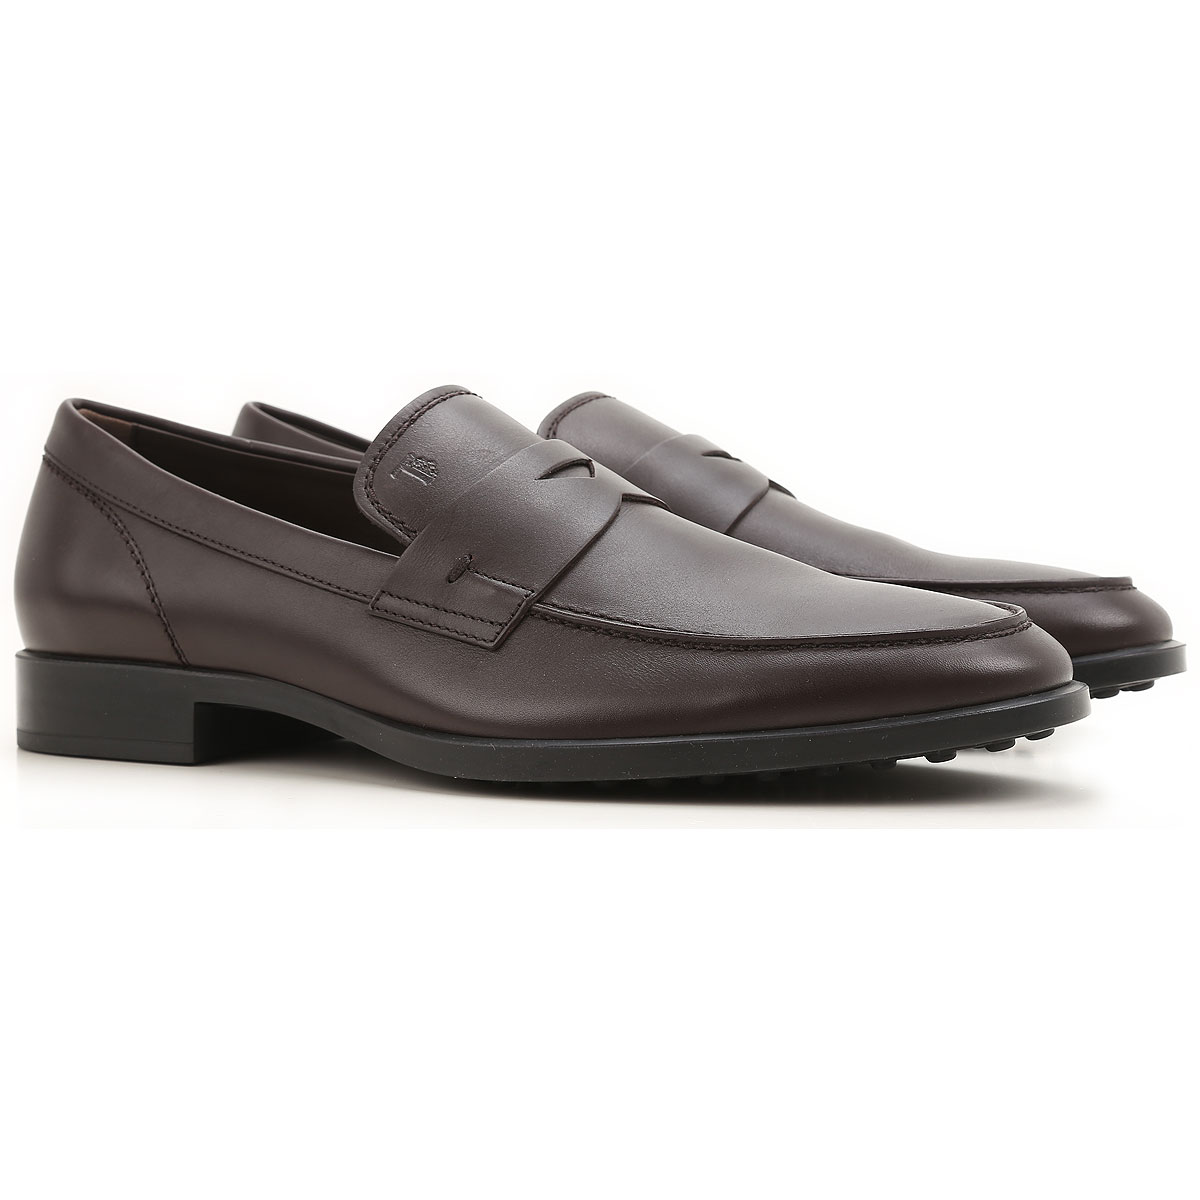 Tods Loafers for Men Brown SE - GOOFASH